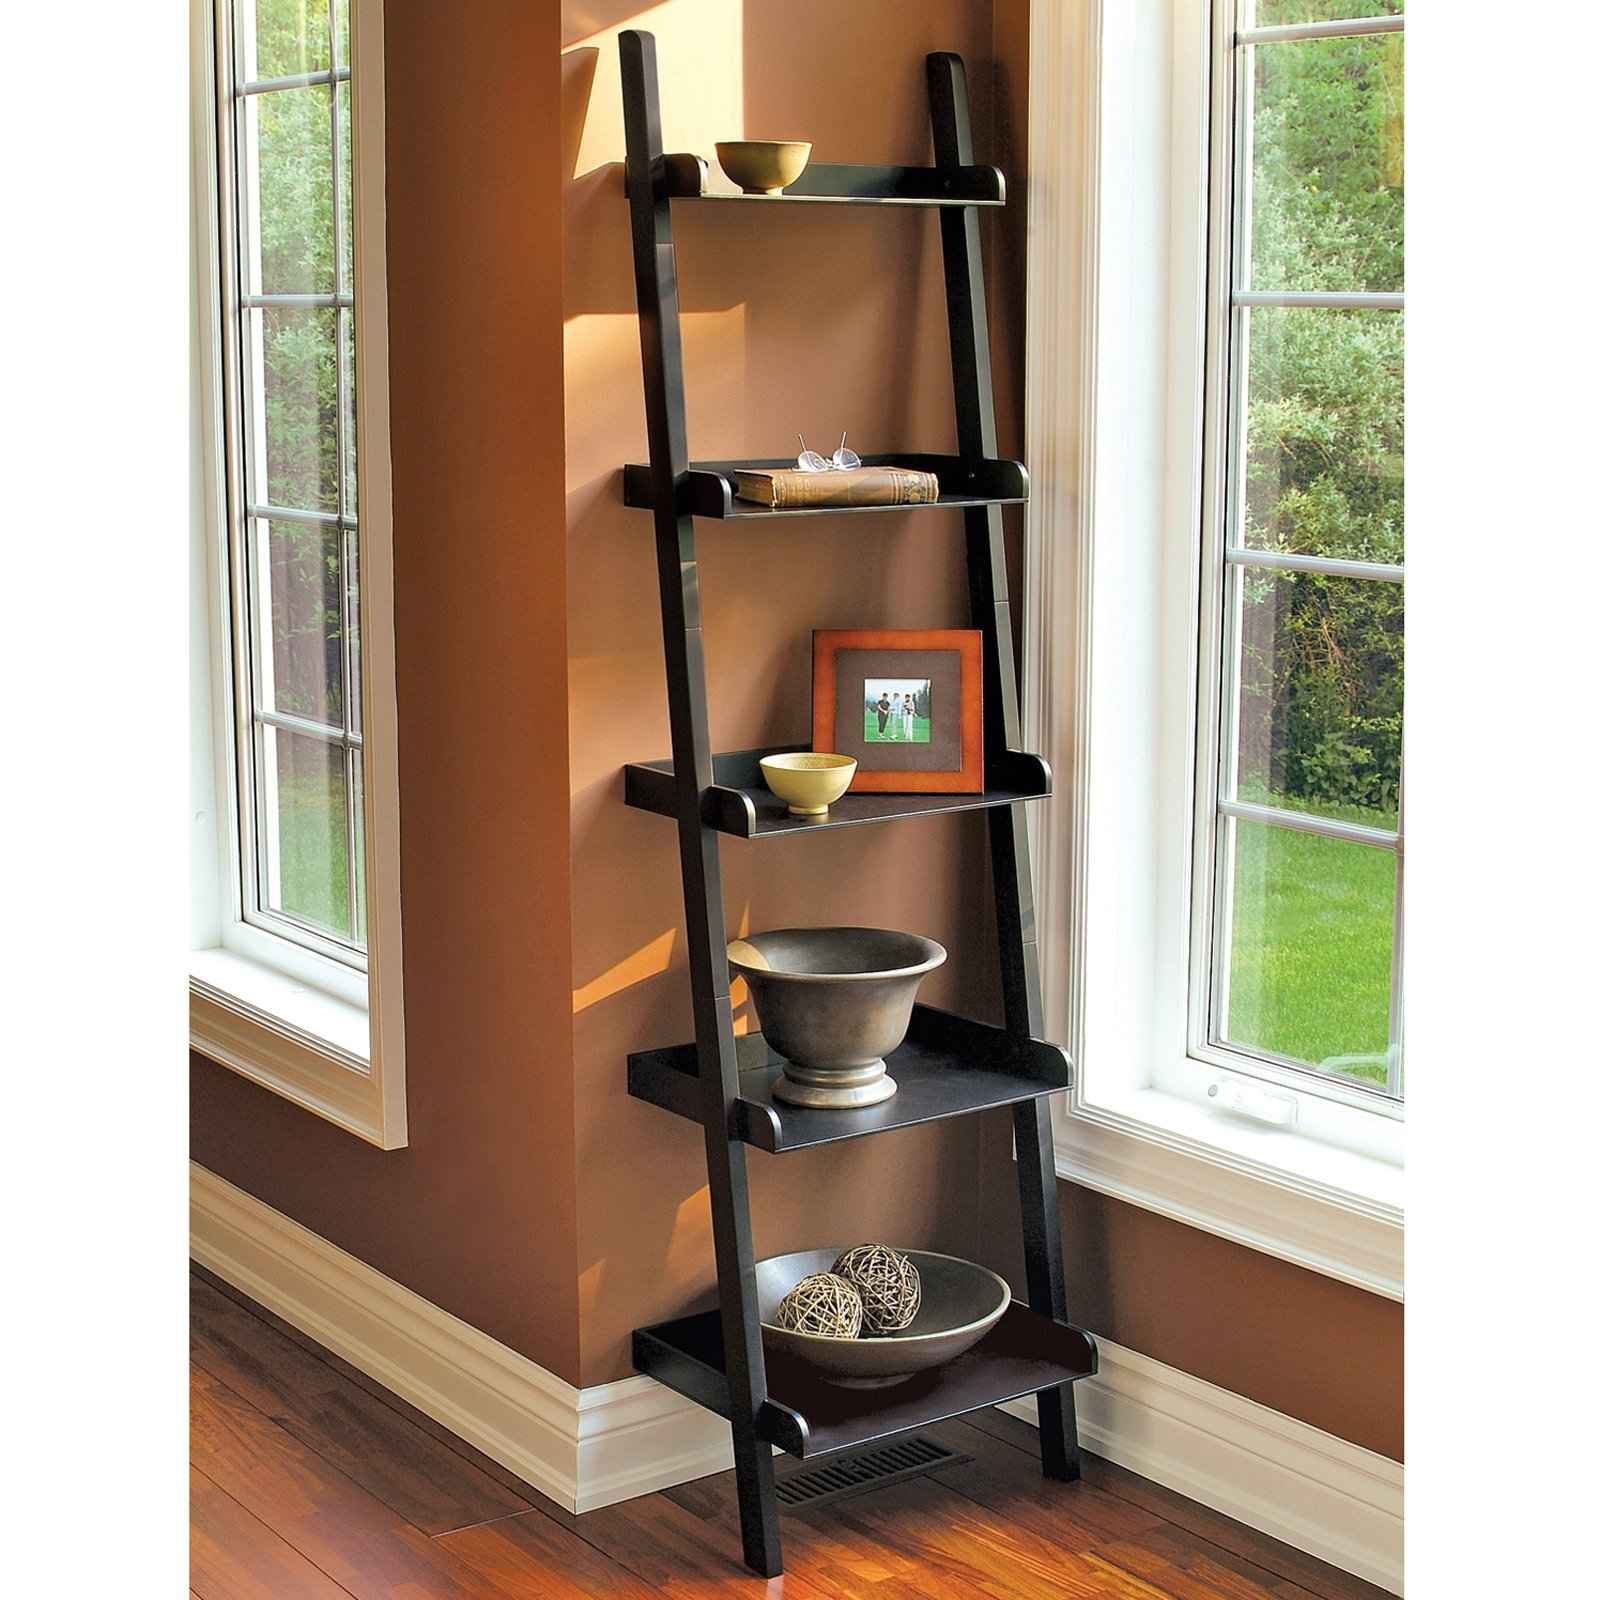 Leaning Ladder Shelf Plans 1600 x 1600